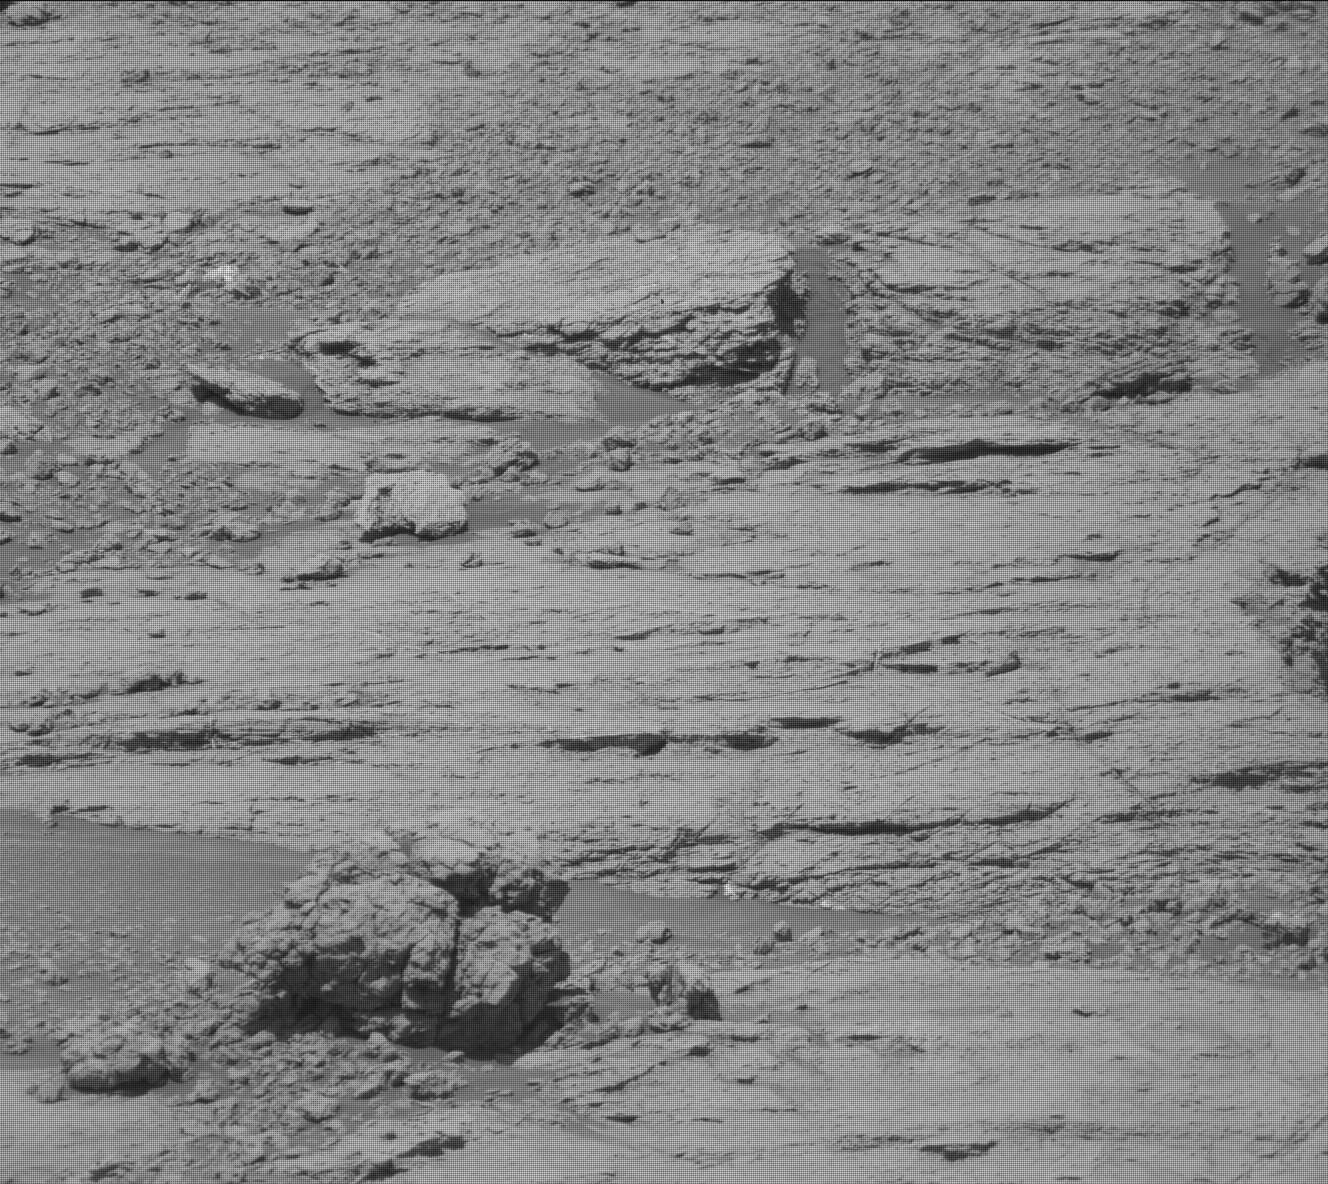 Nasa's Mars rover Curiosity acquired this image using its Mast Camera (Mastcam) on Sol 2581